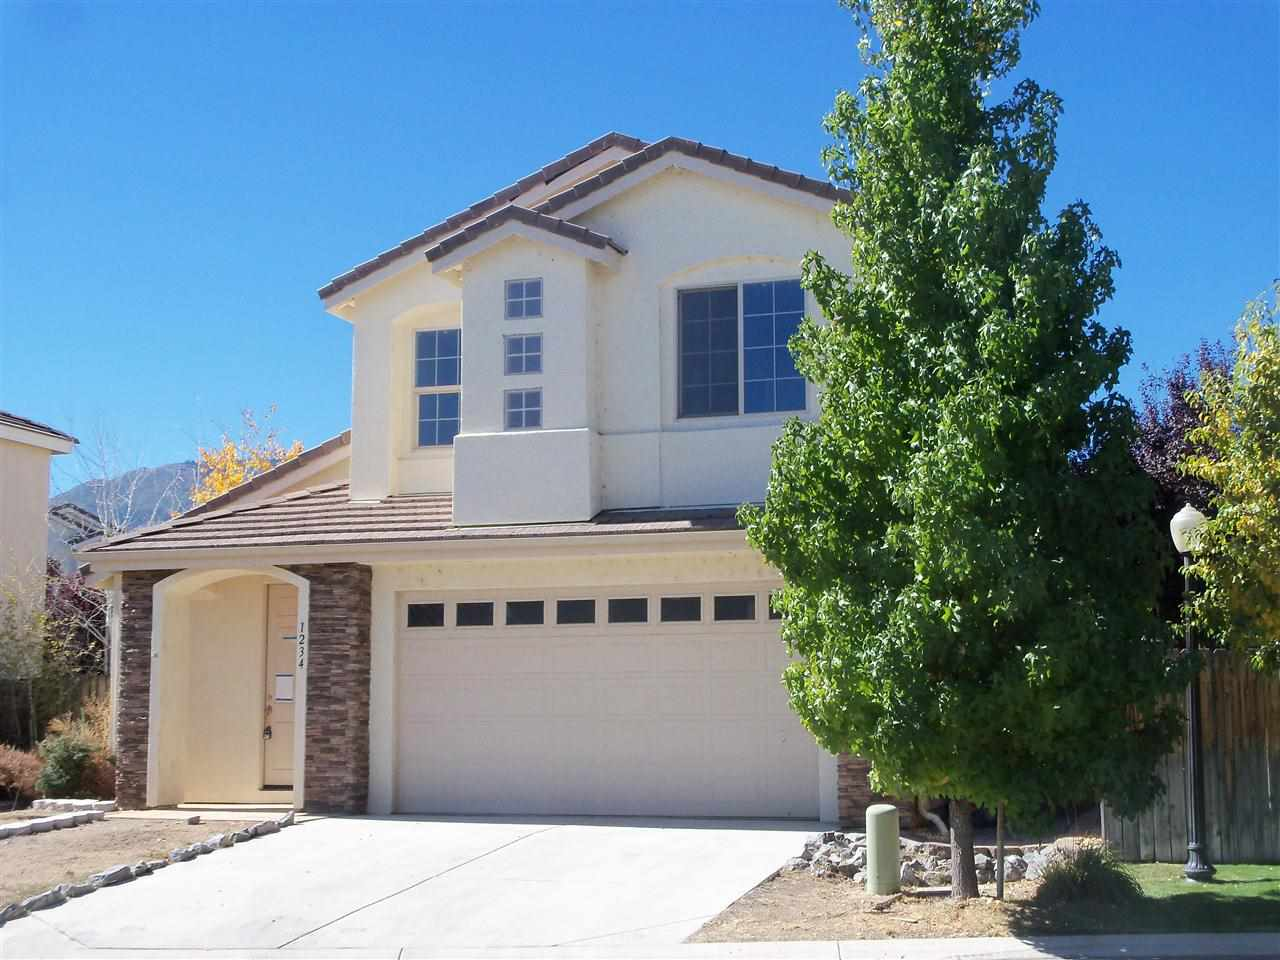 Single Family Home for Active at 1234 Flintwood Drive ,Carson City 1234 Flintwood Drive Carson City, Nevada 89703 United States